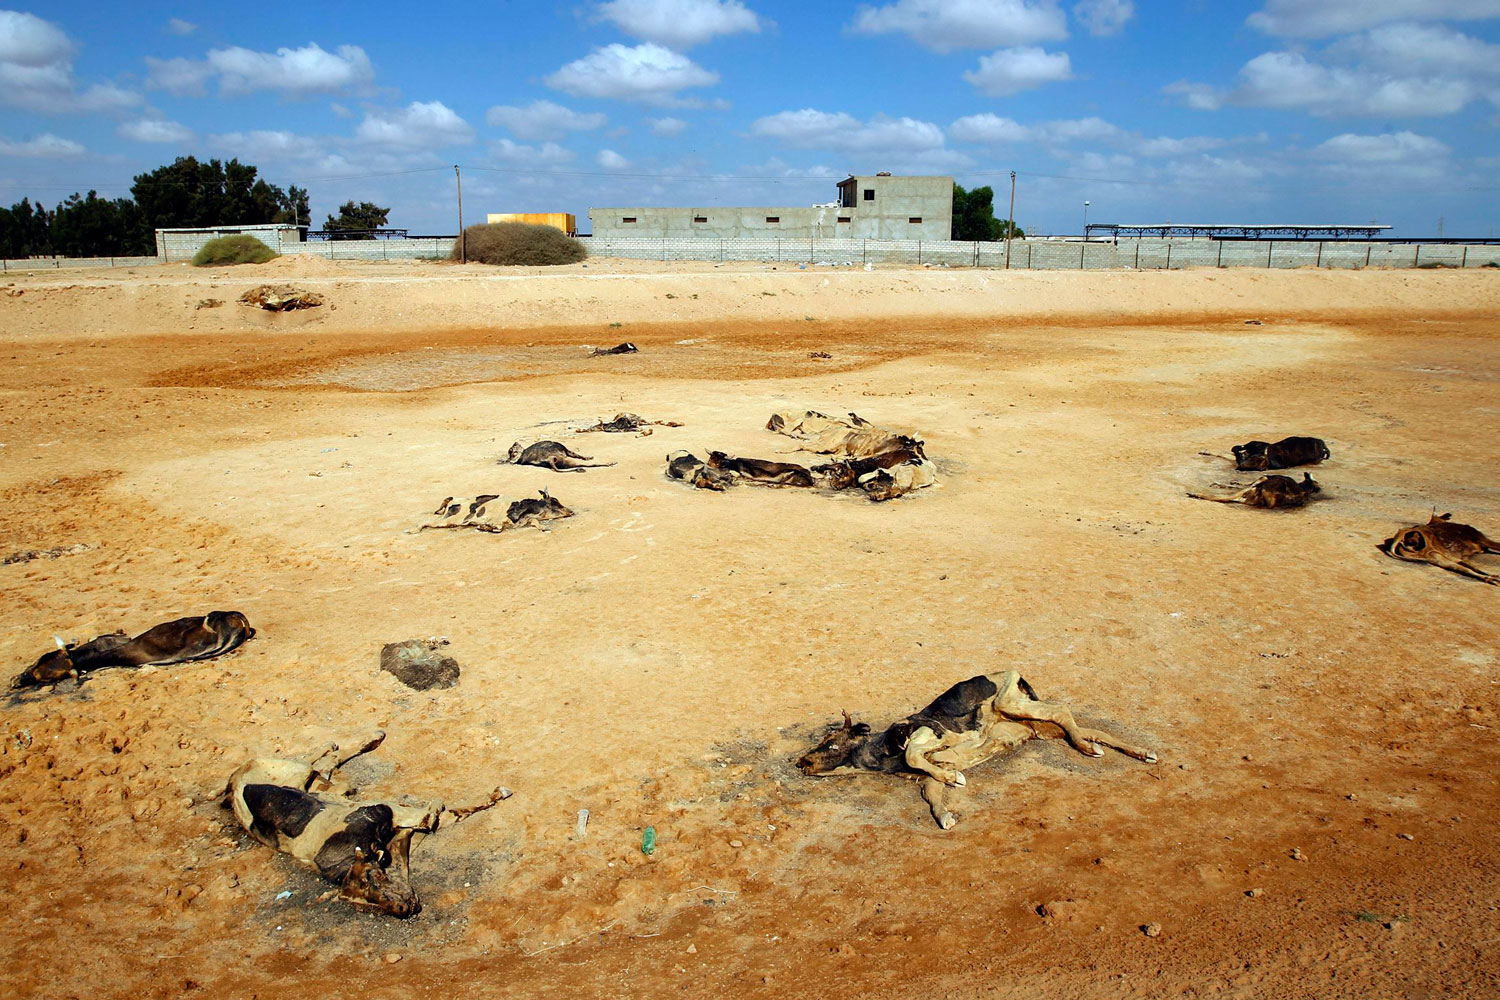 September 14, 2011. Carcasses of cows that locals say were killed by pro-Gaddafi forces are seen on the outskirts of Misrata.